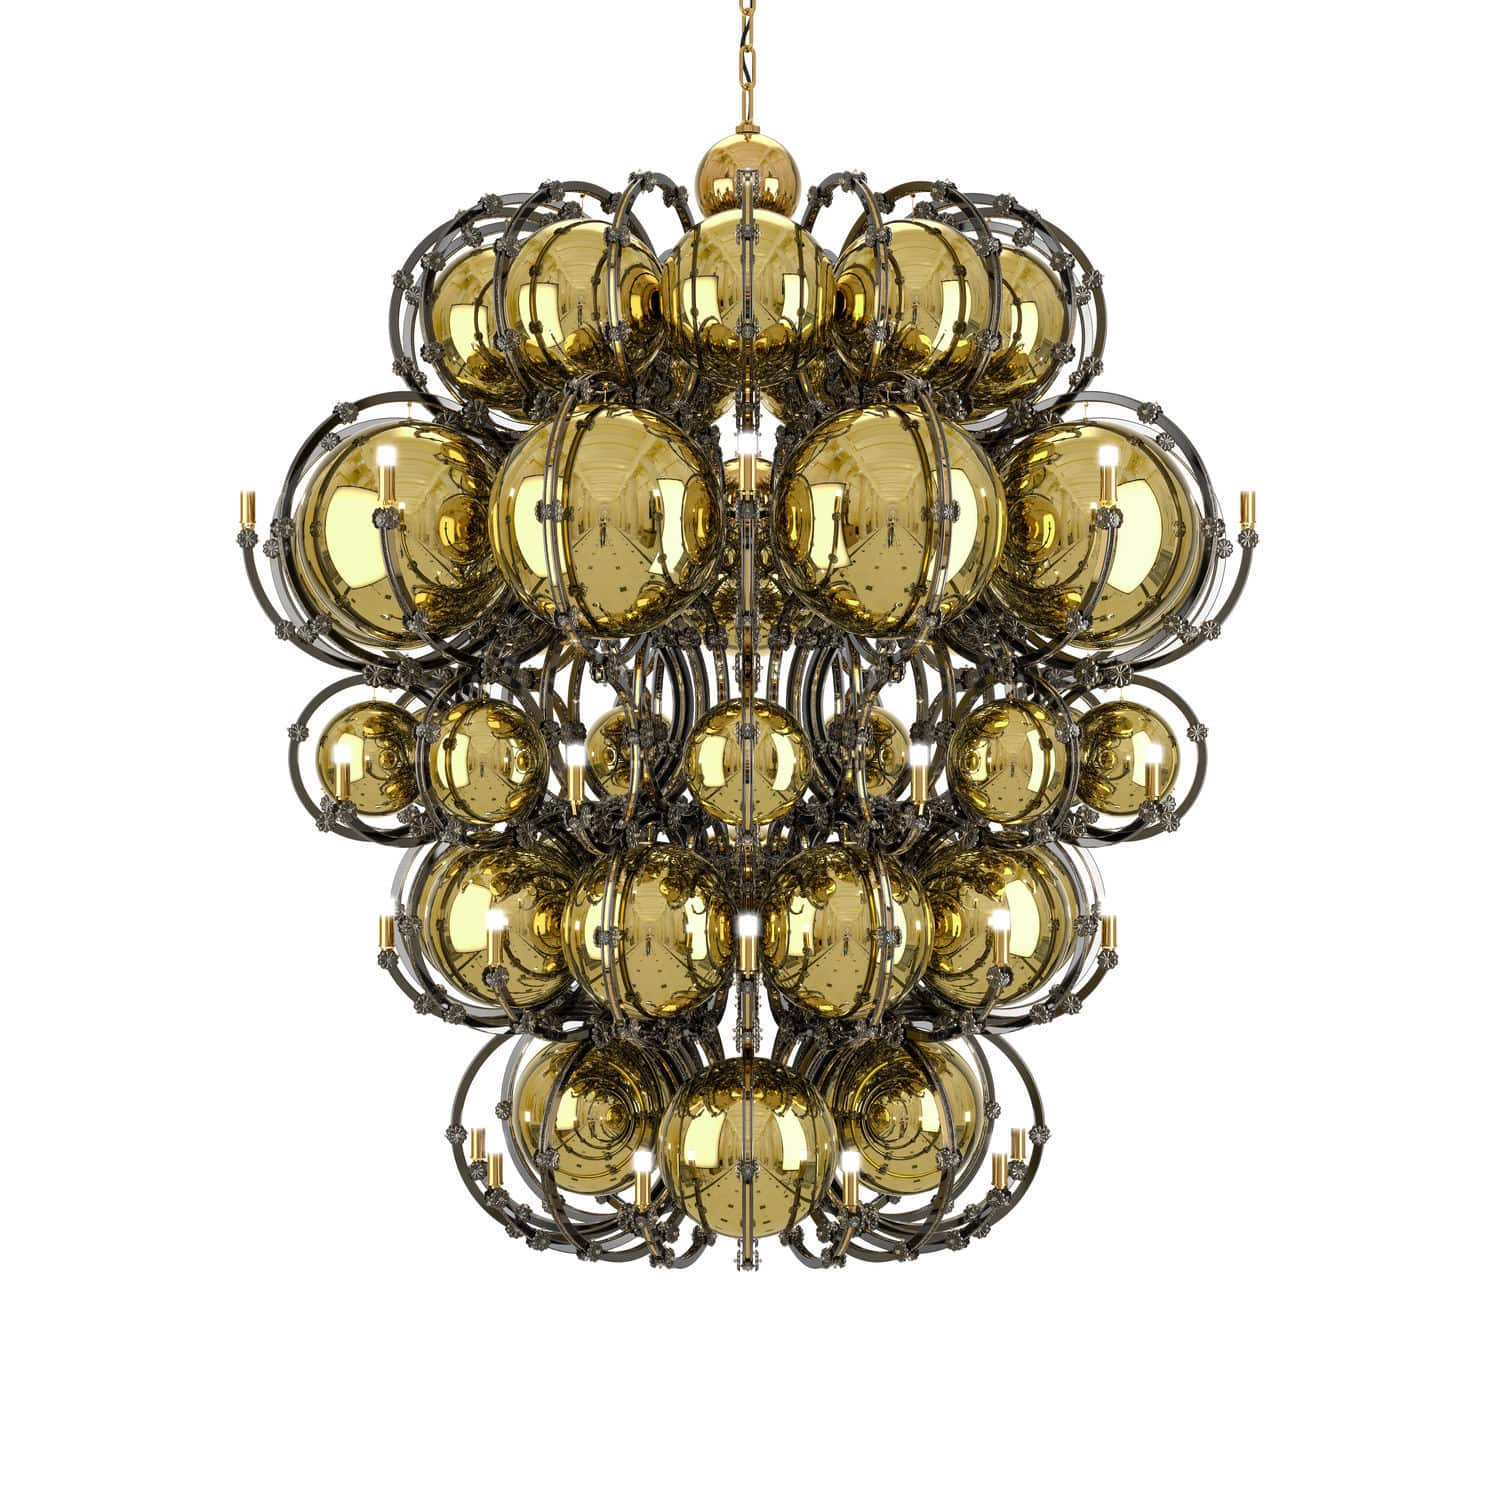 Contemporary chandelier crystal stainless steel maria theresa contemporary chandelier crystal stainless steel maria theresa king venus aloadofball Gallery